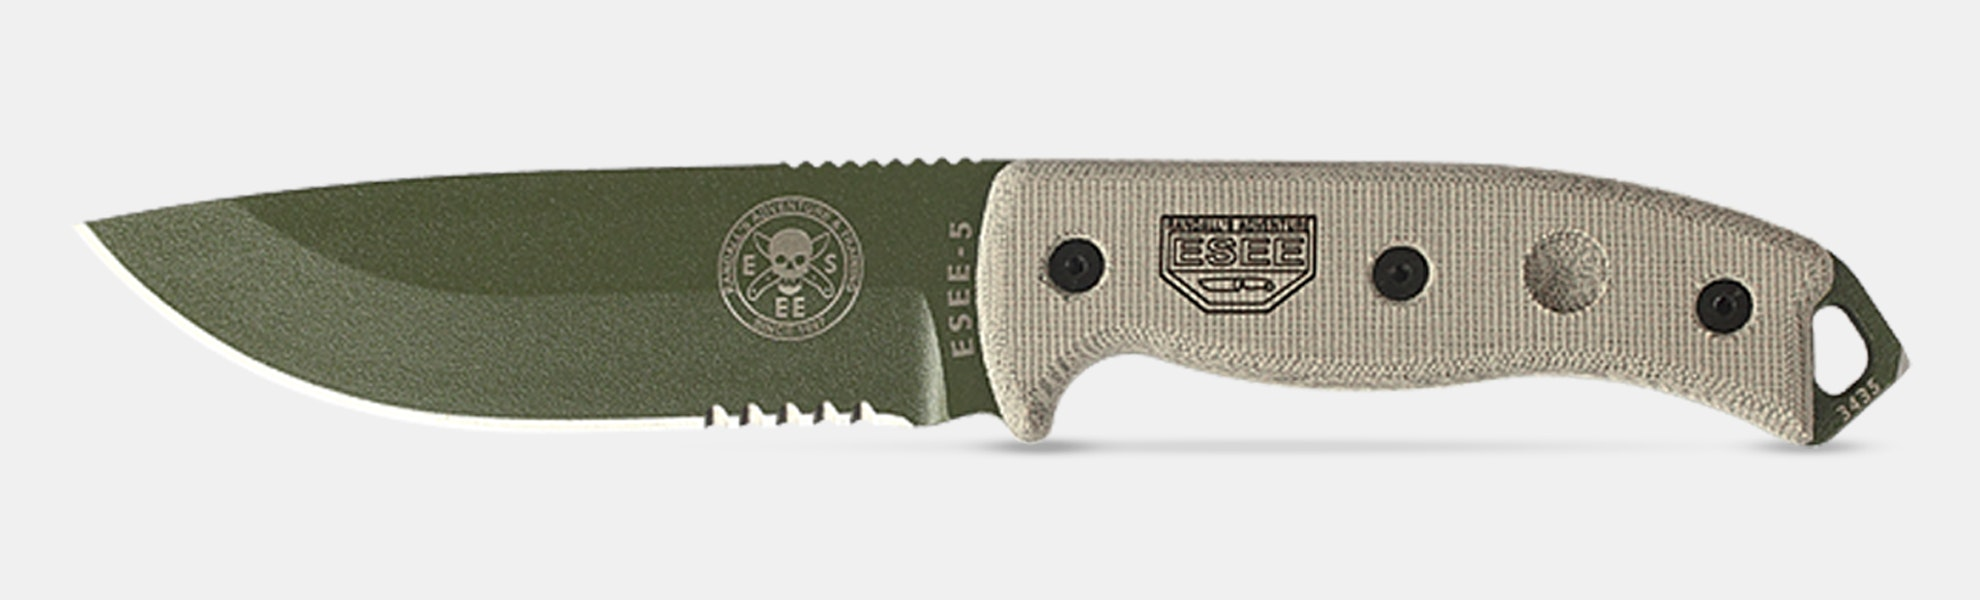 ESEE 5 Full-Tang Fixed Blade Knife